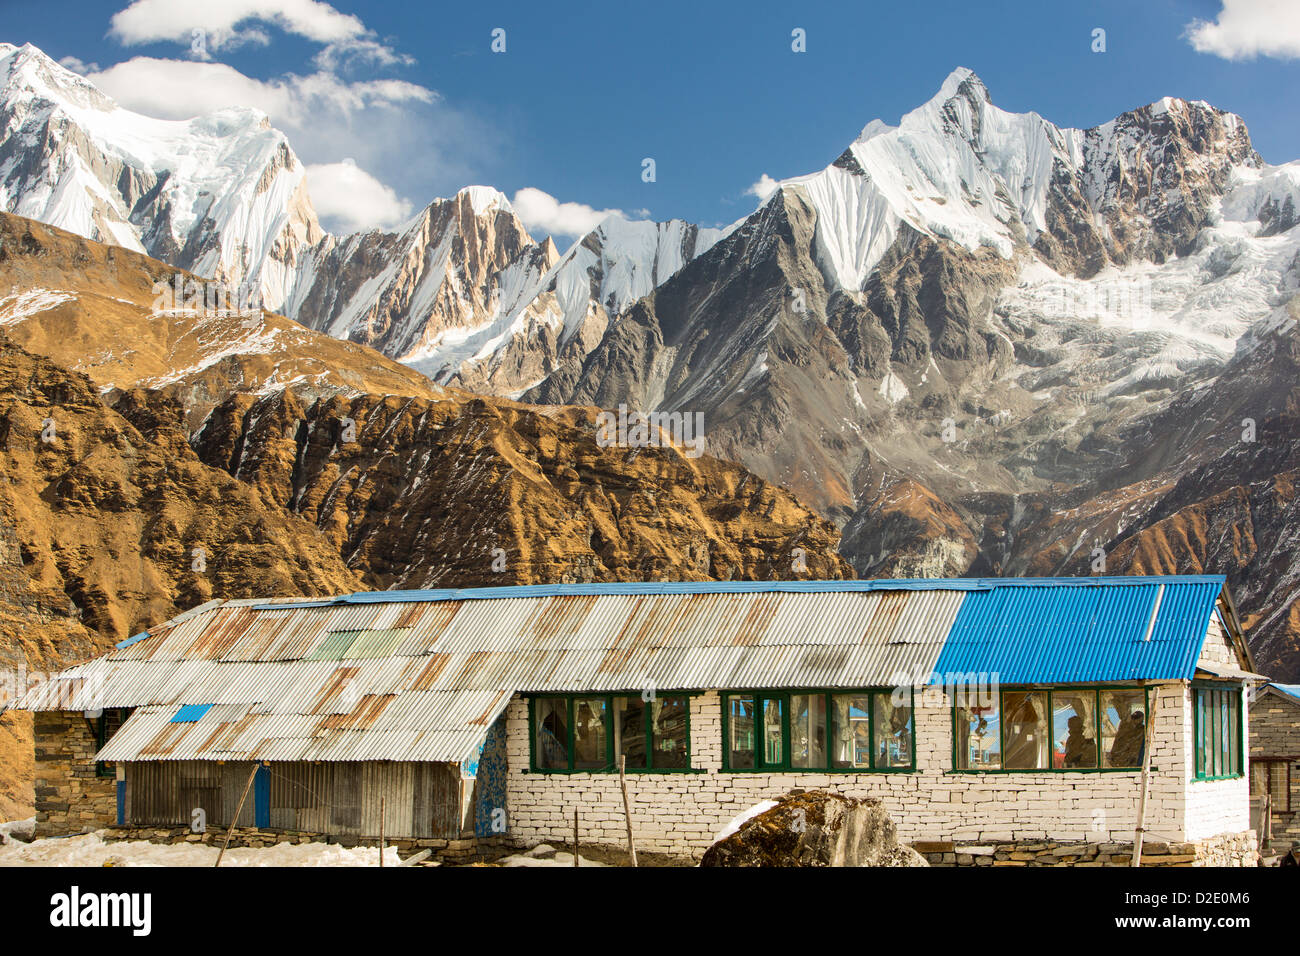 A tea house lodge at Annapurna Base Camp Himalayas, Nepal, looking towards the Fish Tail Peak. - Stock Image